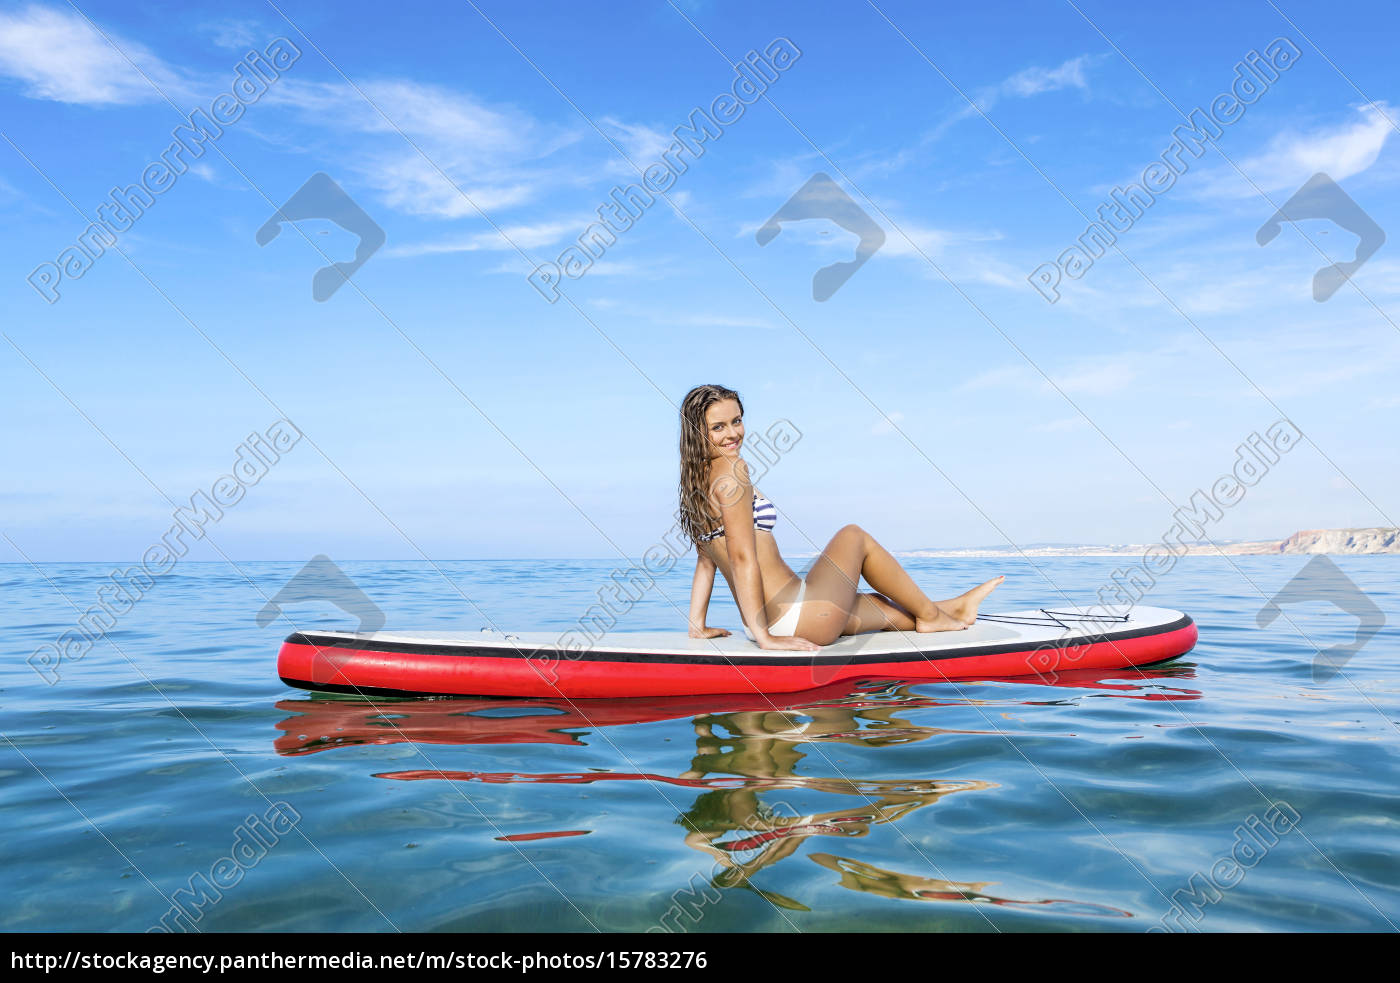 woman, practicing, paddle - 15783276